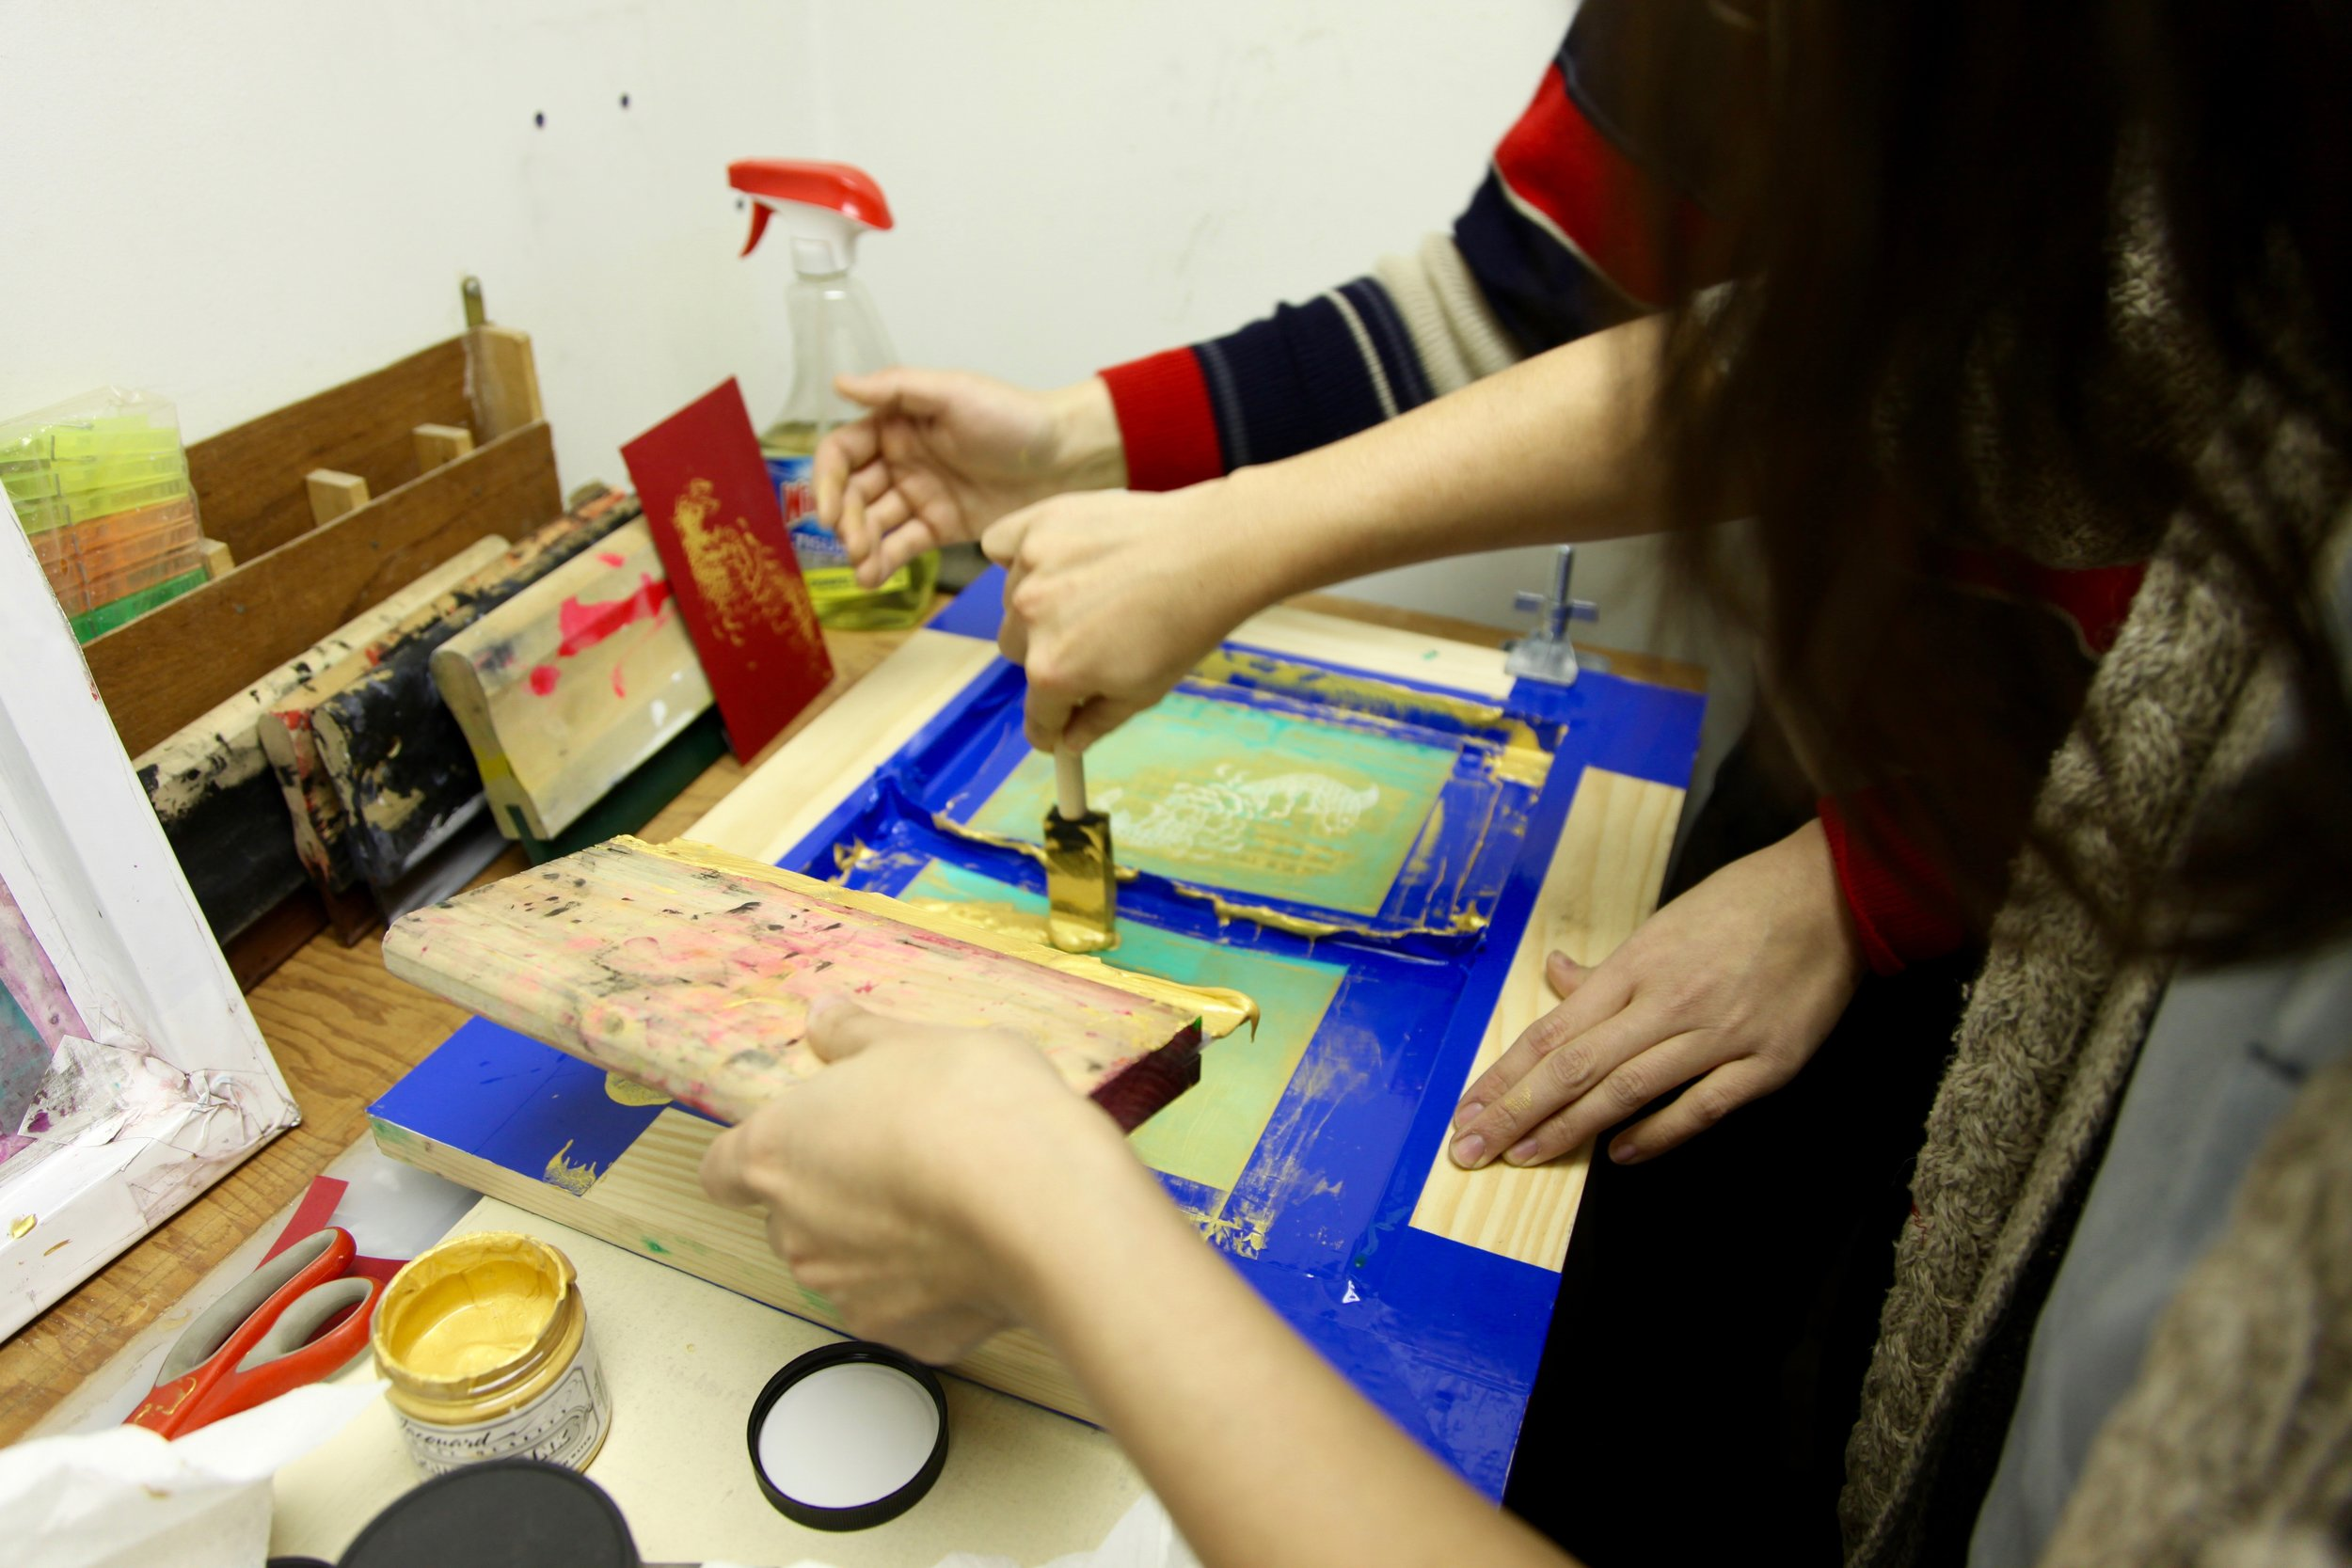 A participant silkscreens a rooster design onto her red envelope in W.O.W's screen-printing studio.